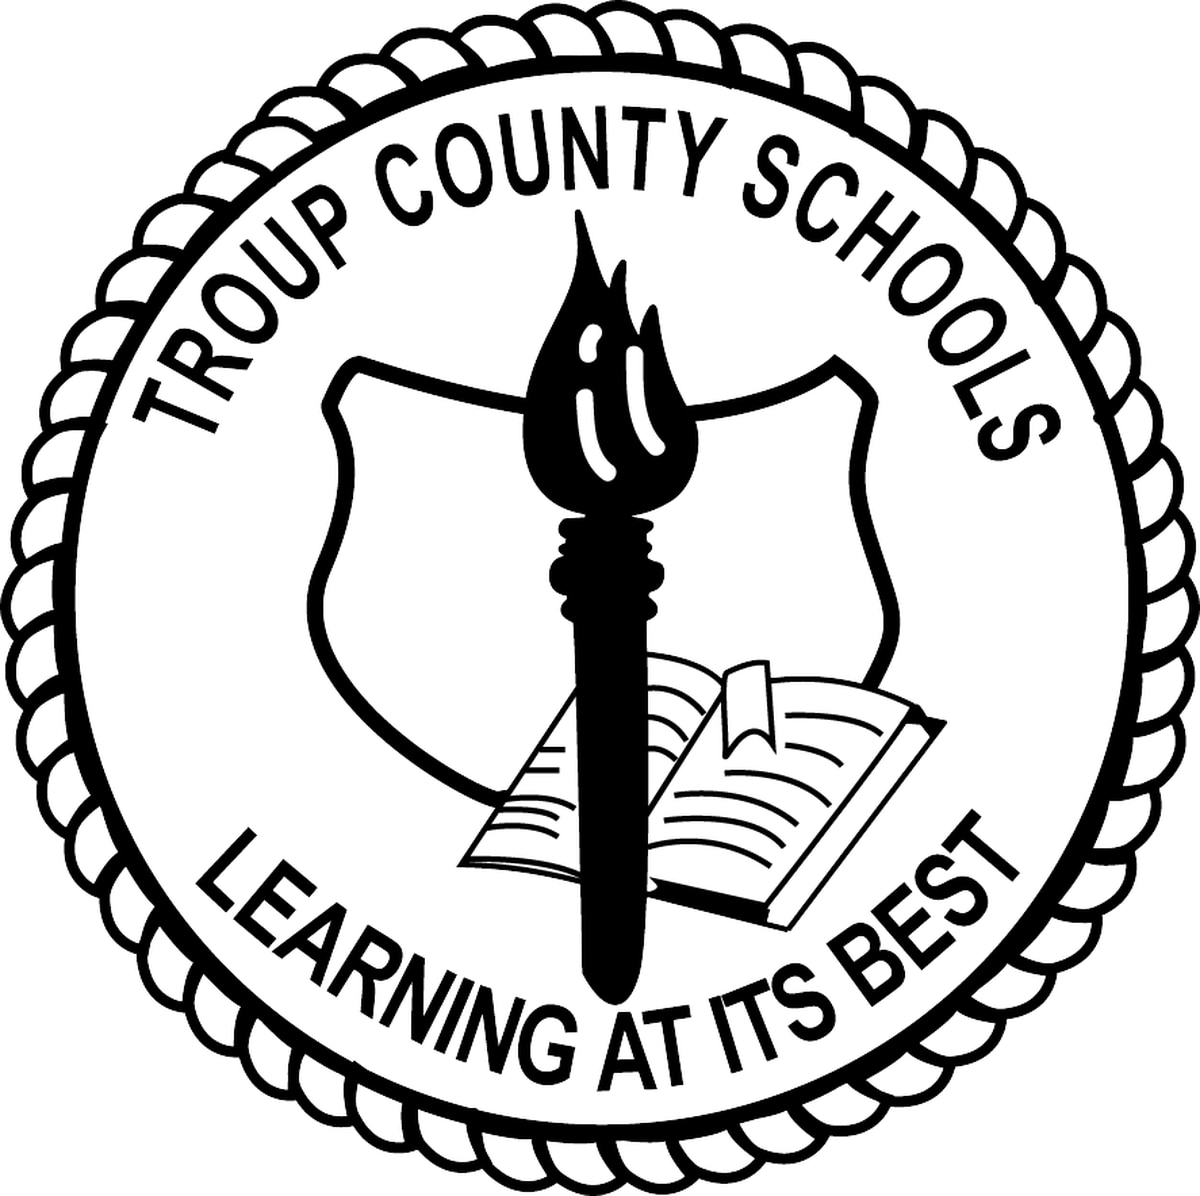 Troup County Schools Announces Increase In Graduation Rates